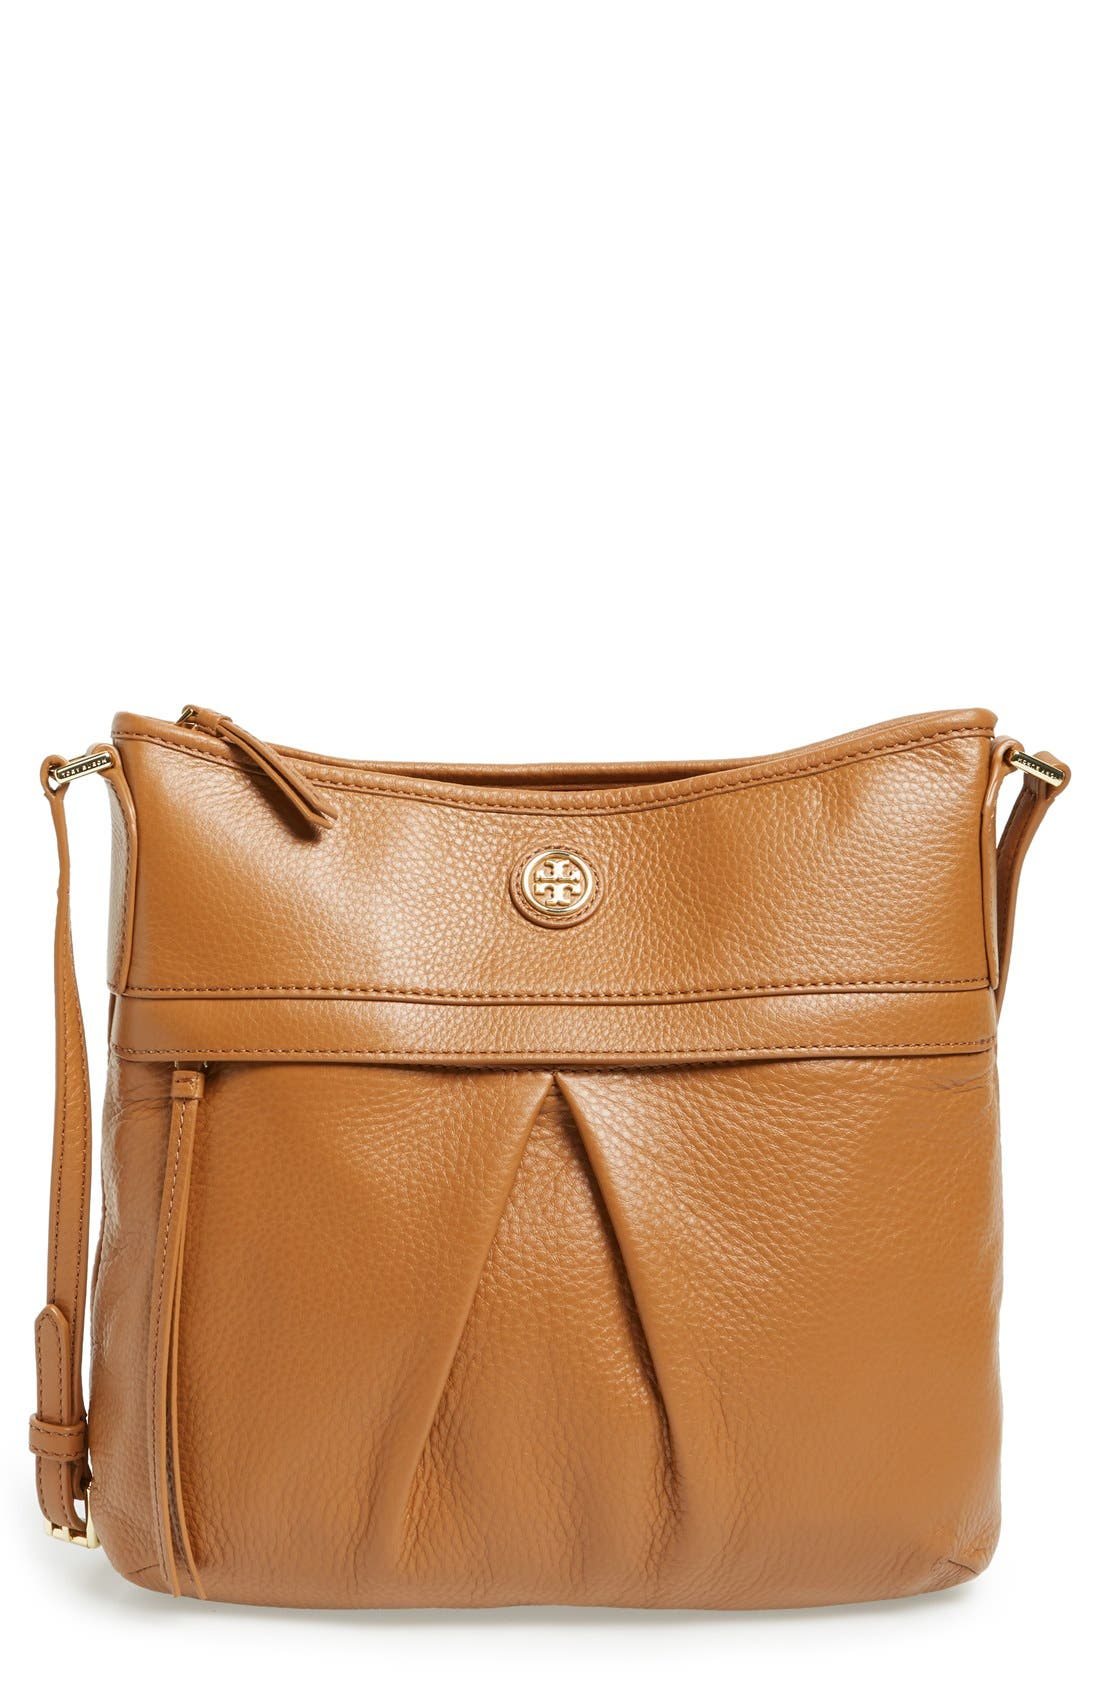 Main Image - Tory Burch Leather Swingpack